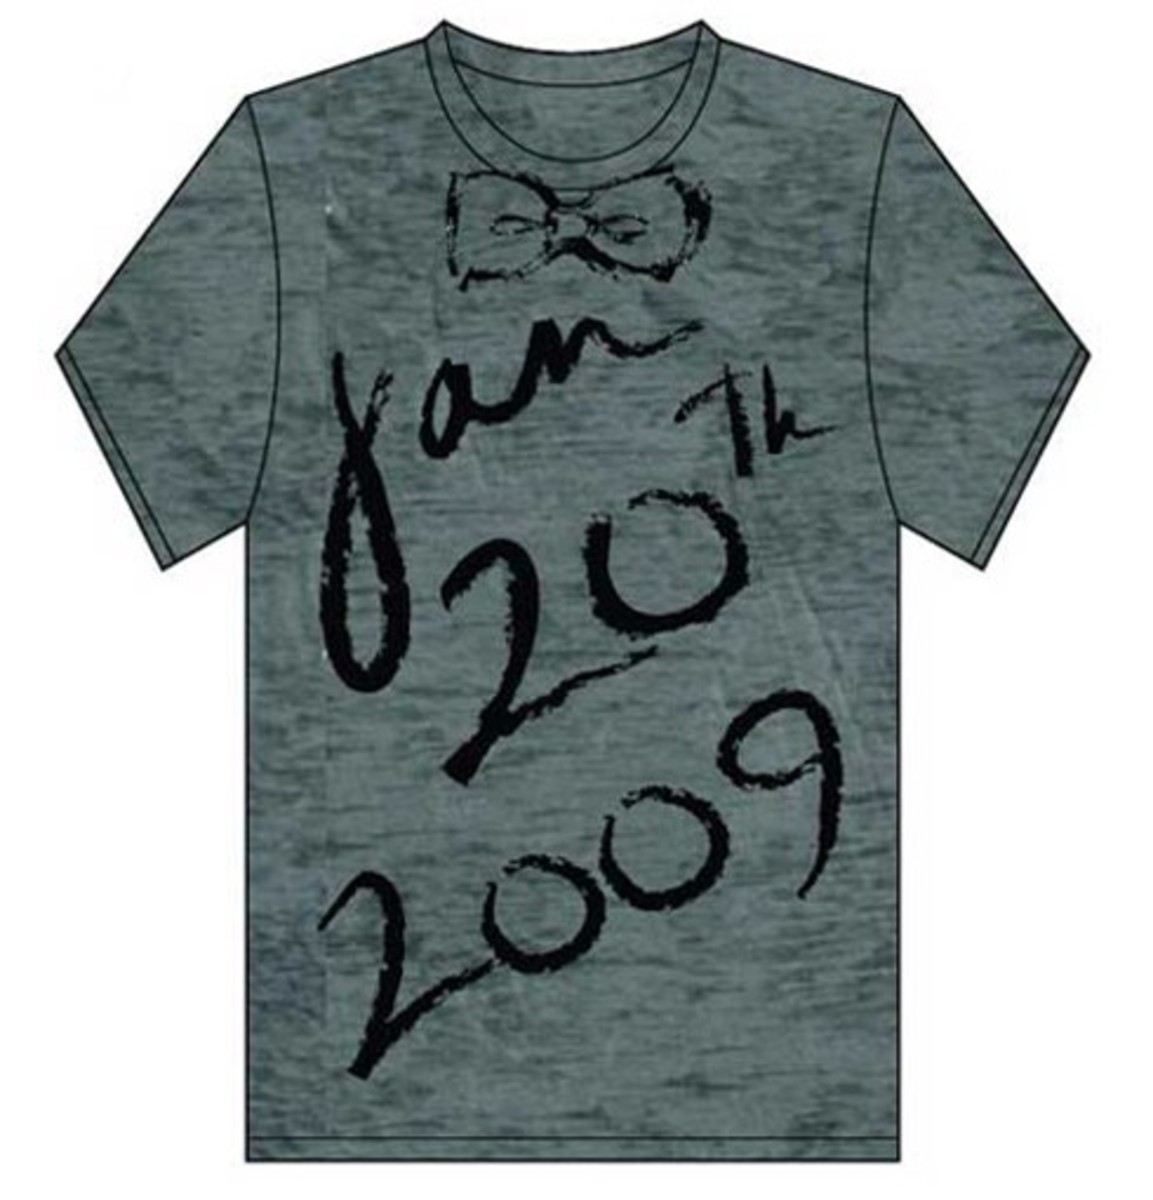 Barack Obama Inaugural: Runway To Change - Zac Posen Unisex T-Shirt